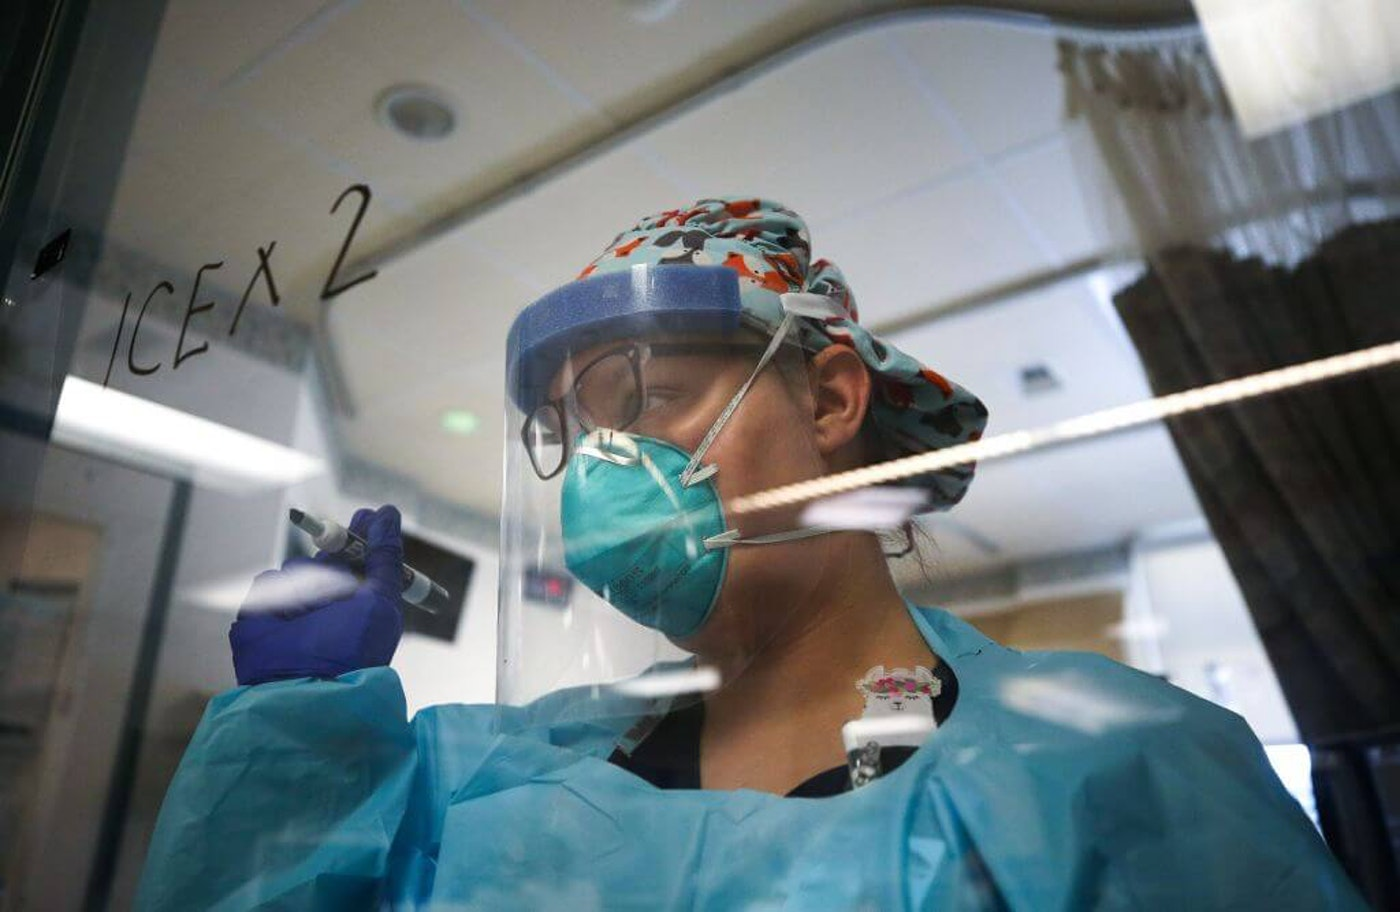 A nurse makes a note on the window of a coronavirus (COVID-19) patient's room in the Intensive Care Unit (ICU) at El Centro Regional Medical Center in hard-hit Imperial County on July 28, 2020 in El Centro, California. (Photo by Mario Tama/Getty Images)